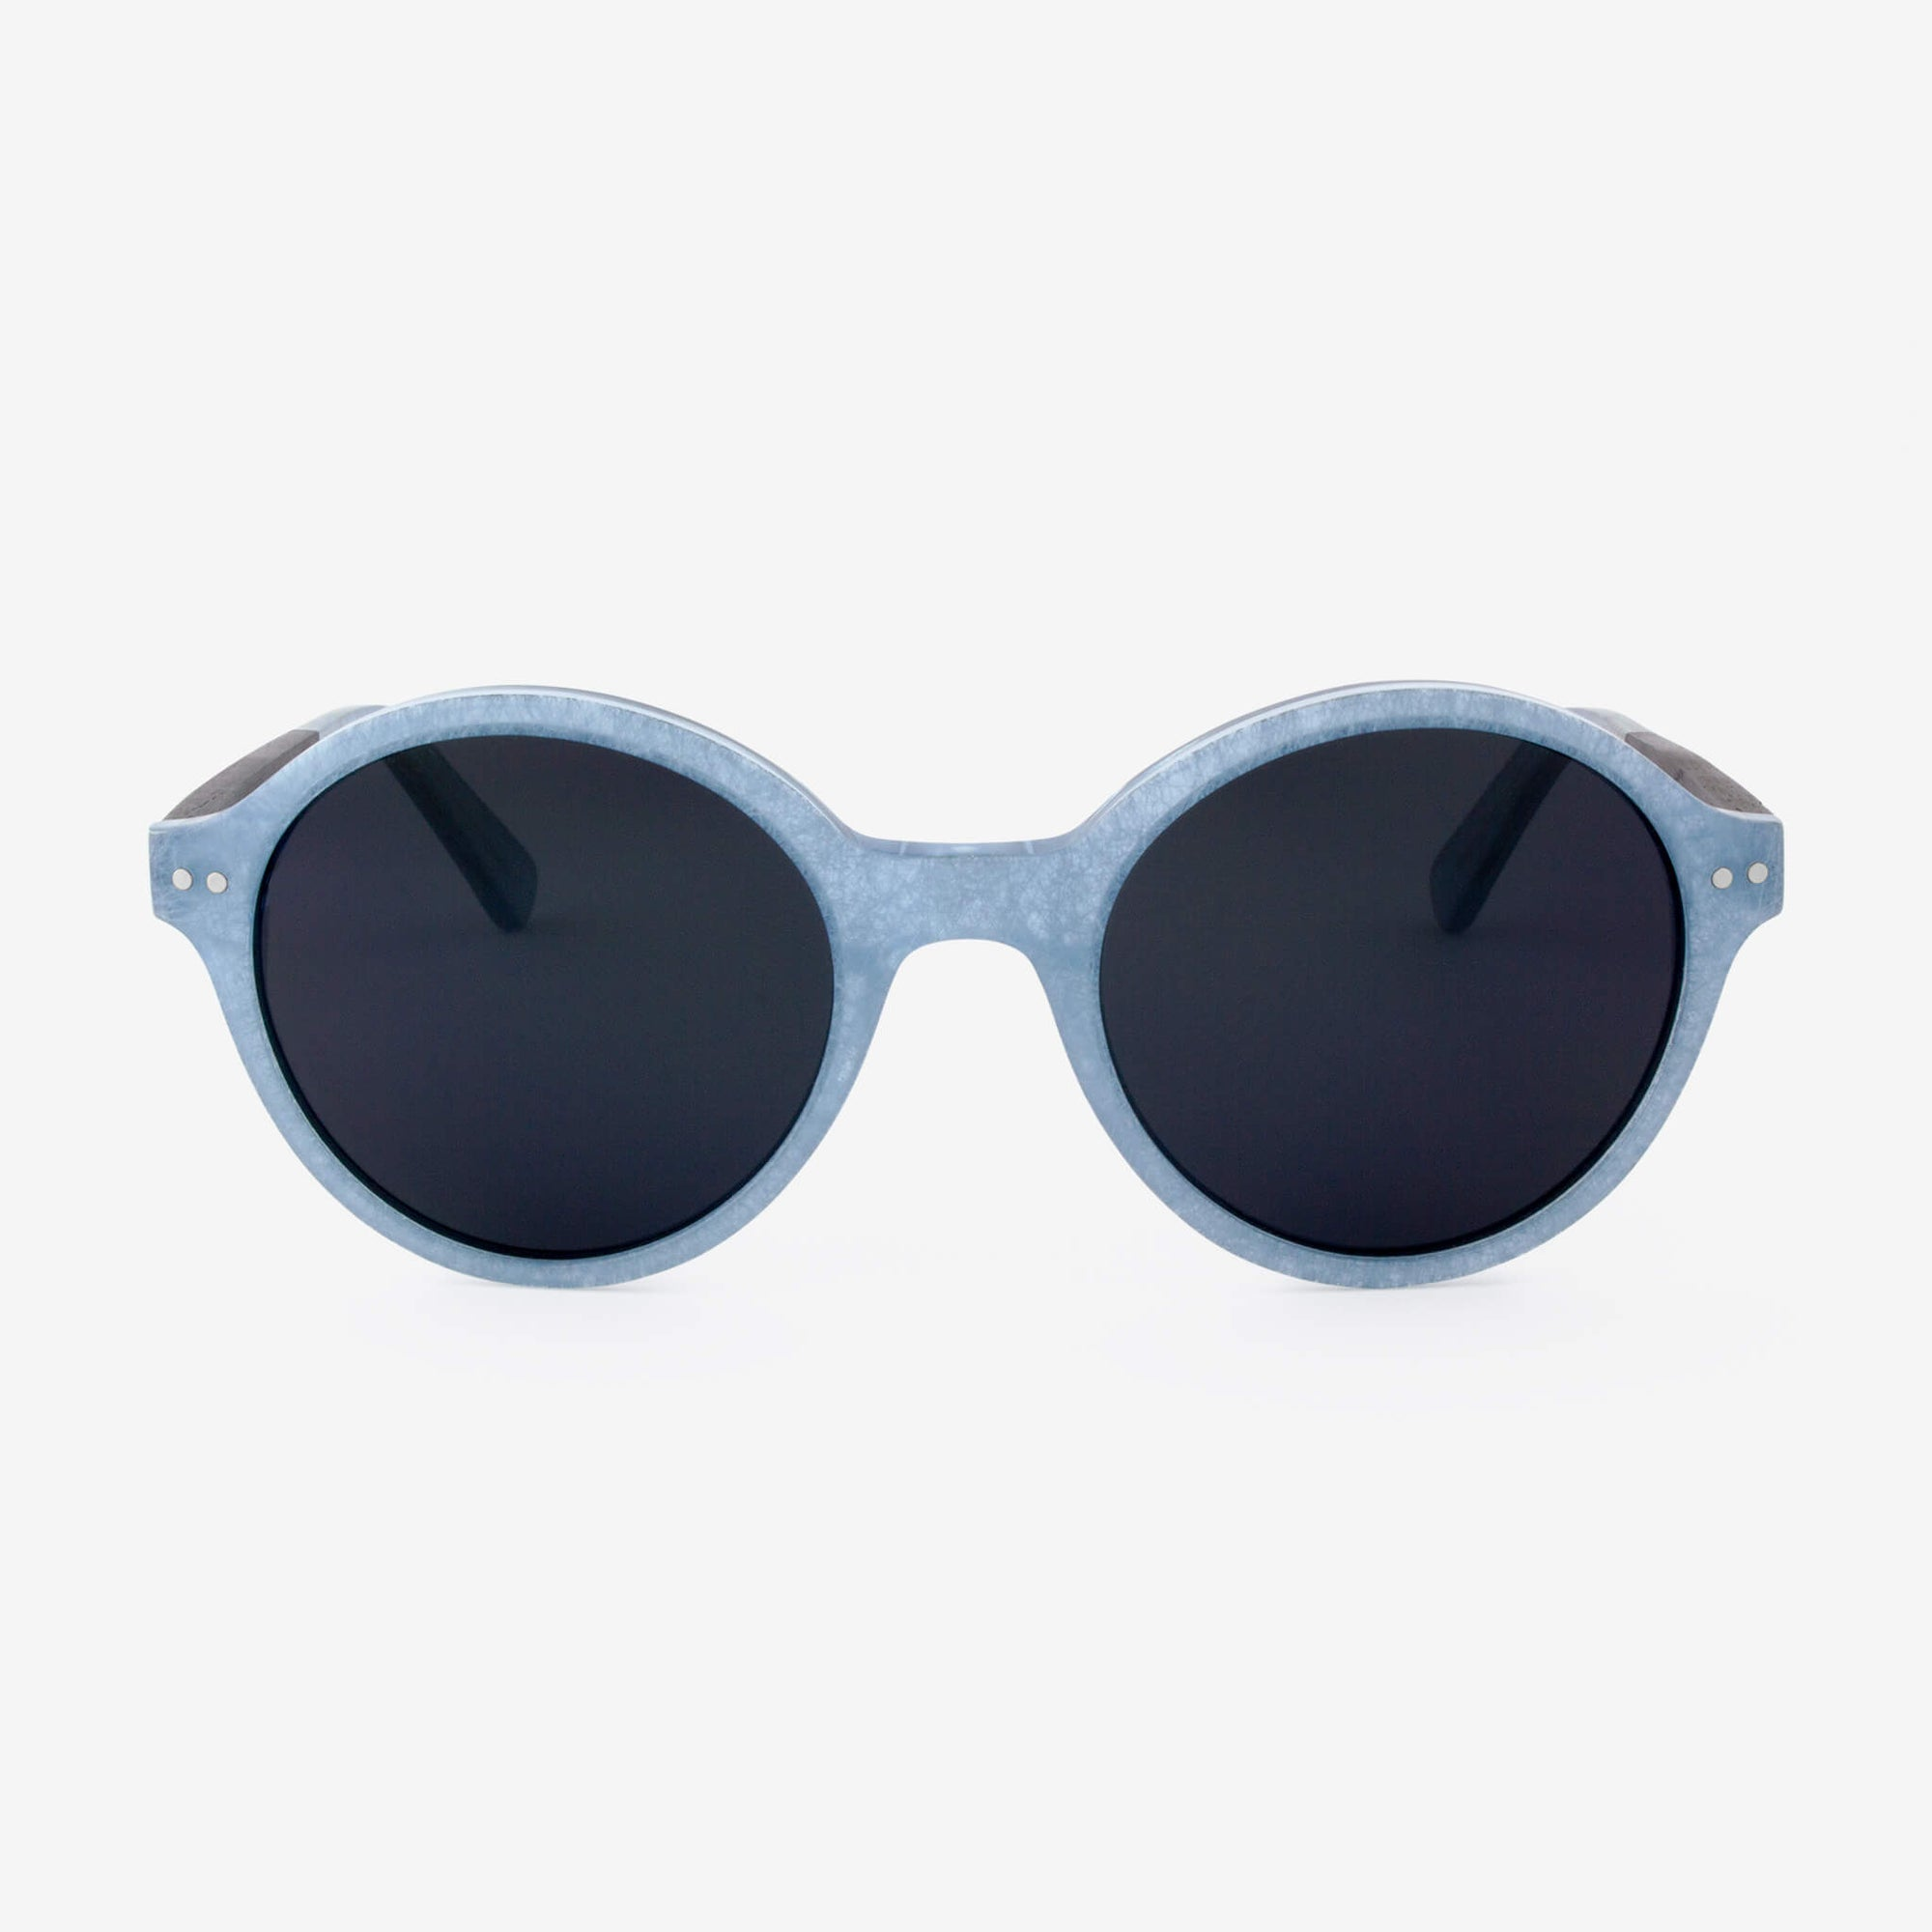 Gables light blue metallic fiber acetate and wood sunglasses